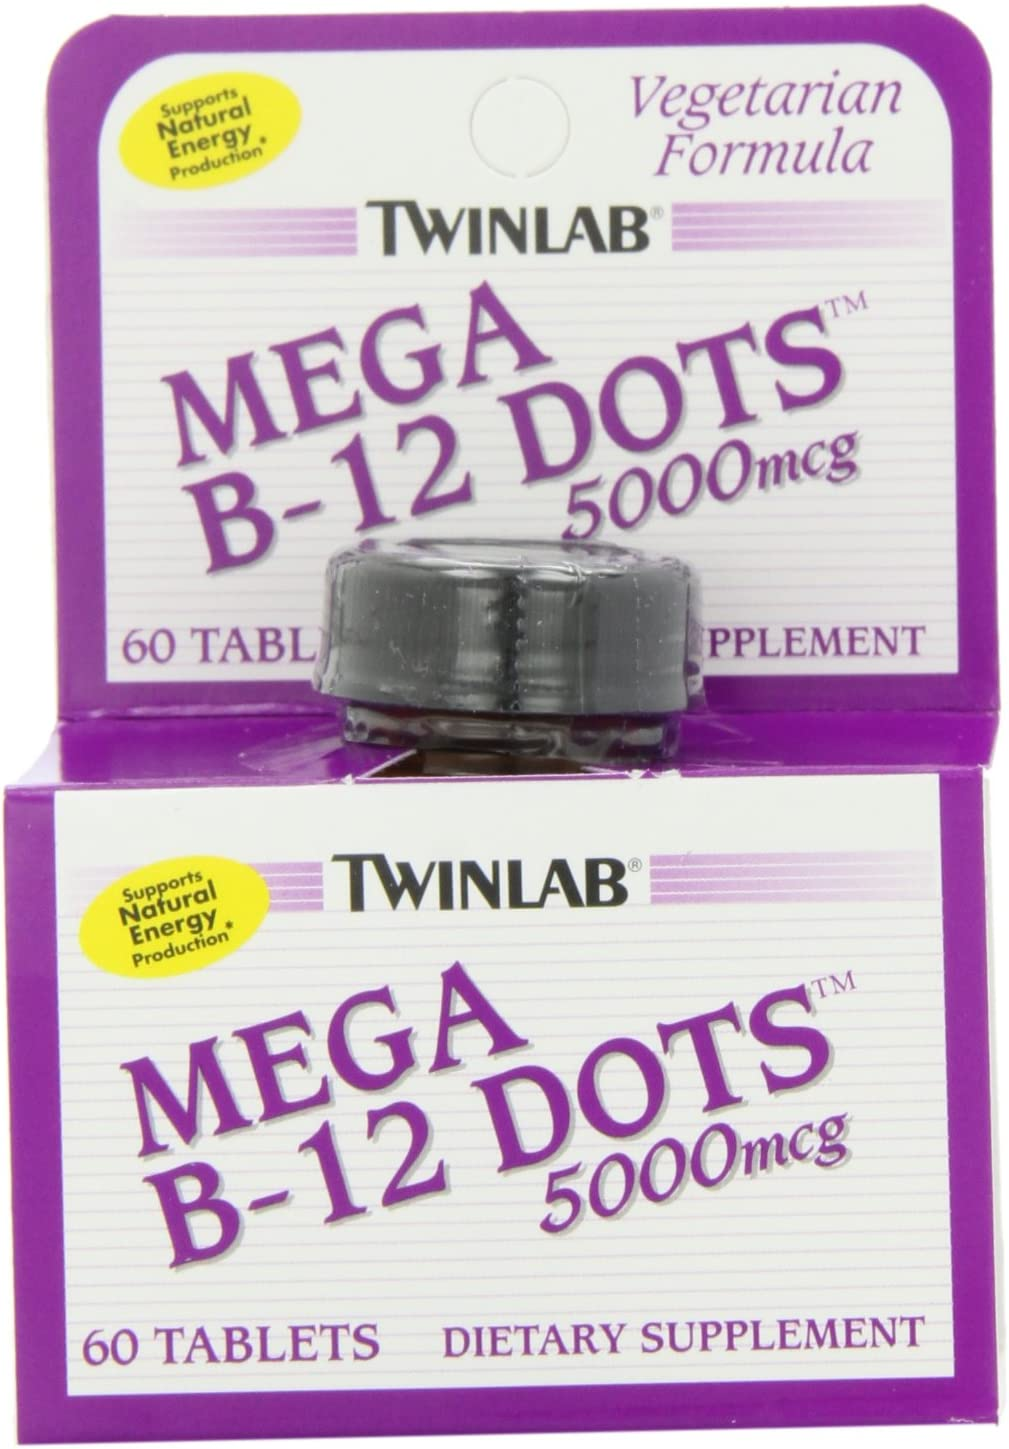 Twinlab Mega B-12 Dots Vitamin B-12, 5000mcg, 60 Tablets Pack of 2